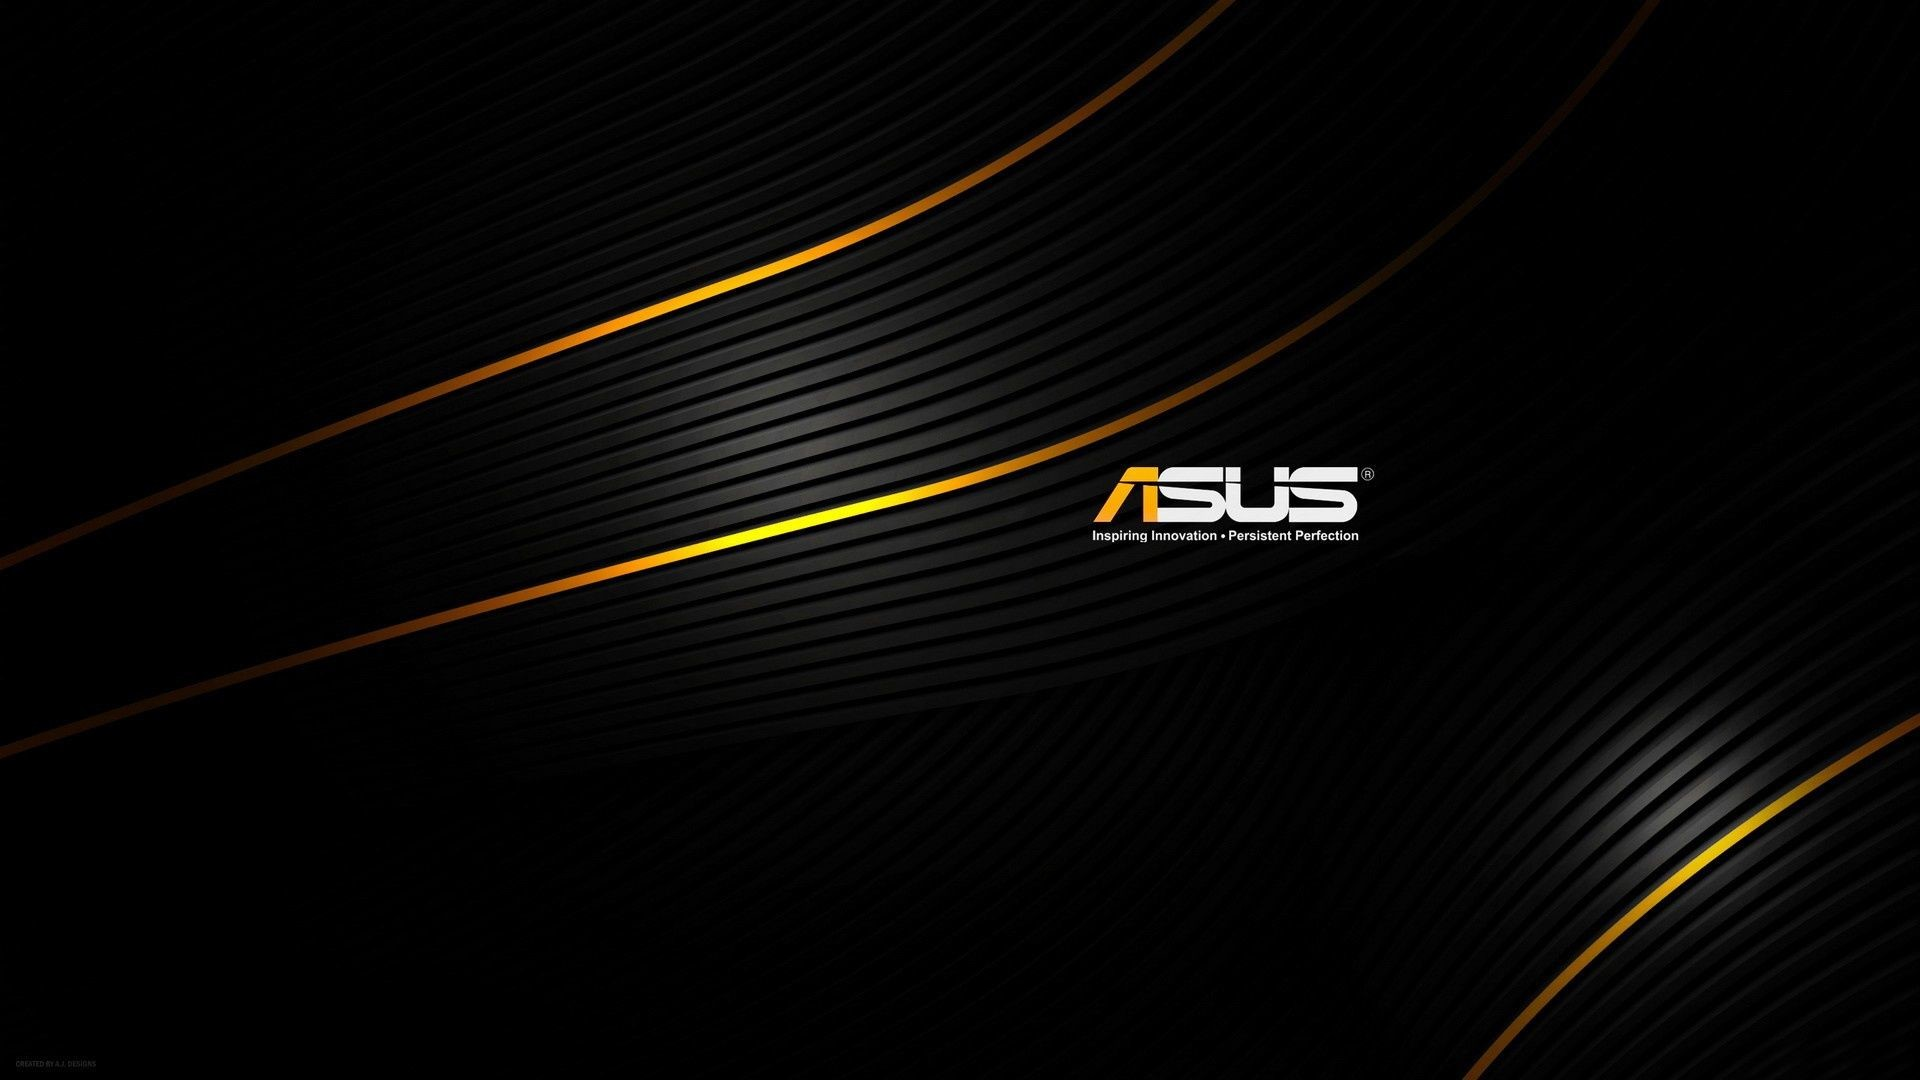 Asus Black Background Wallpapers – – 250550